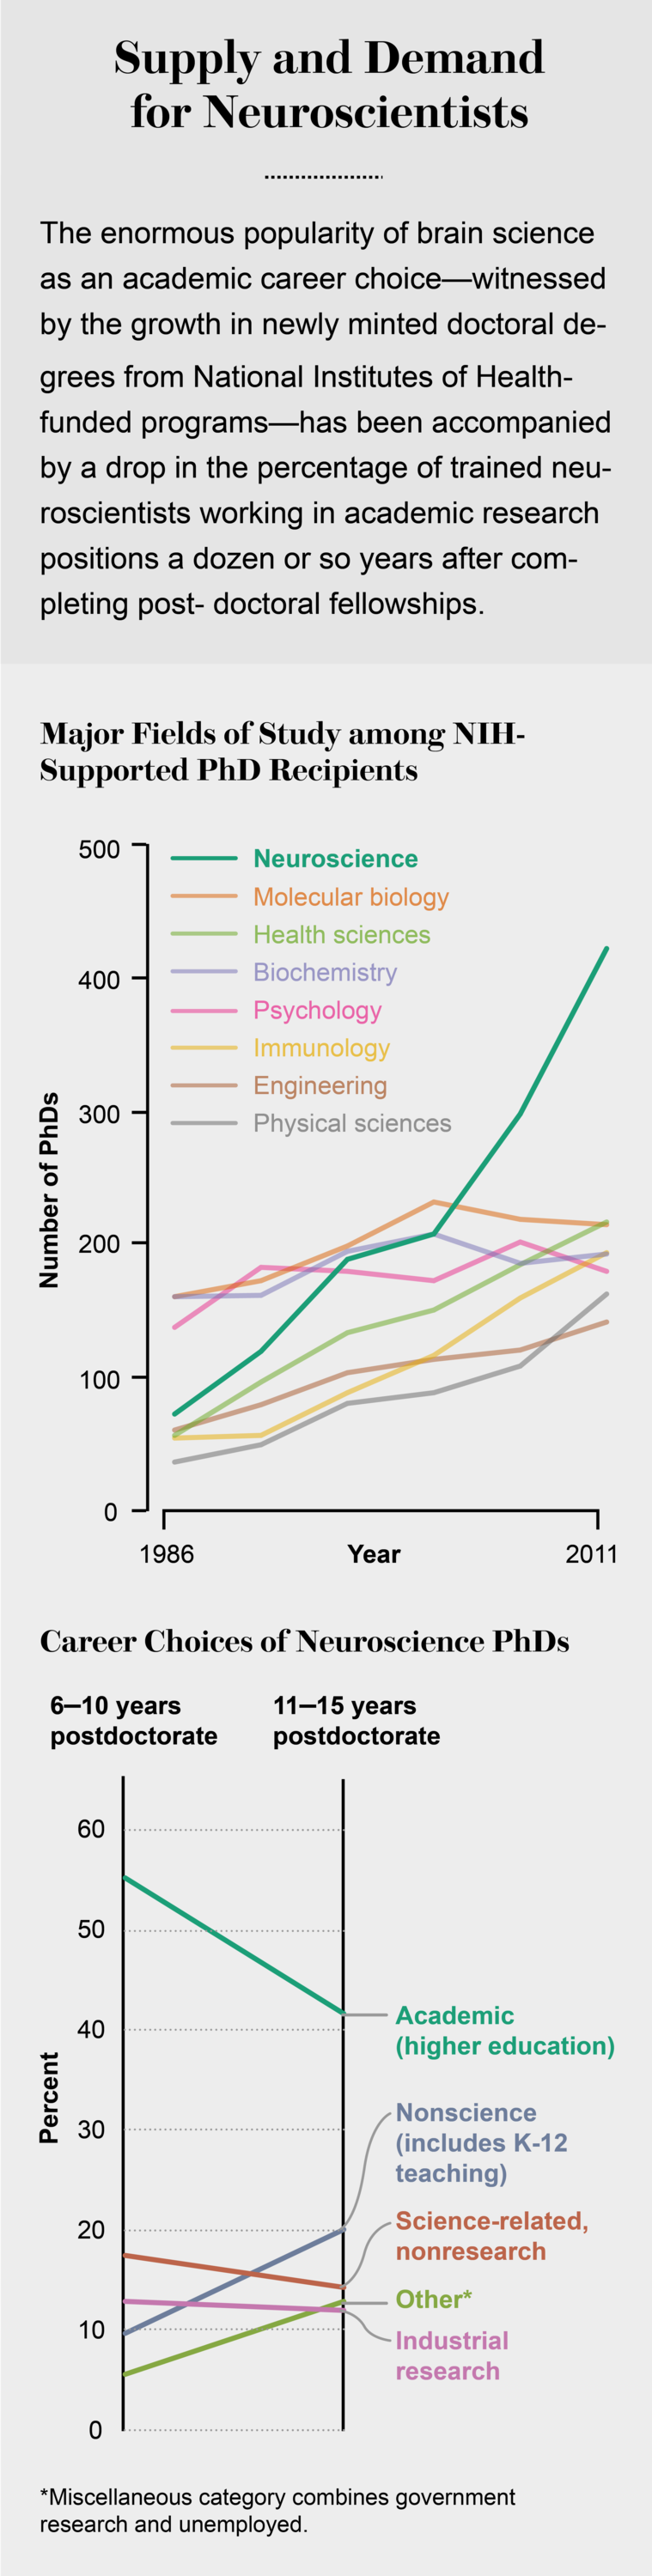 Where Will All the New Neuroscientists Go?